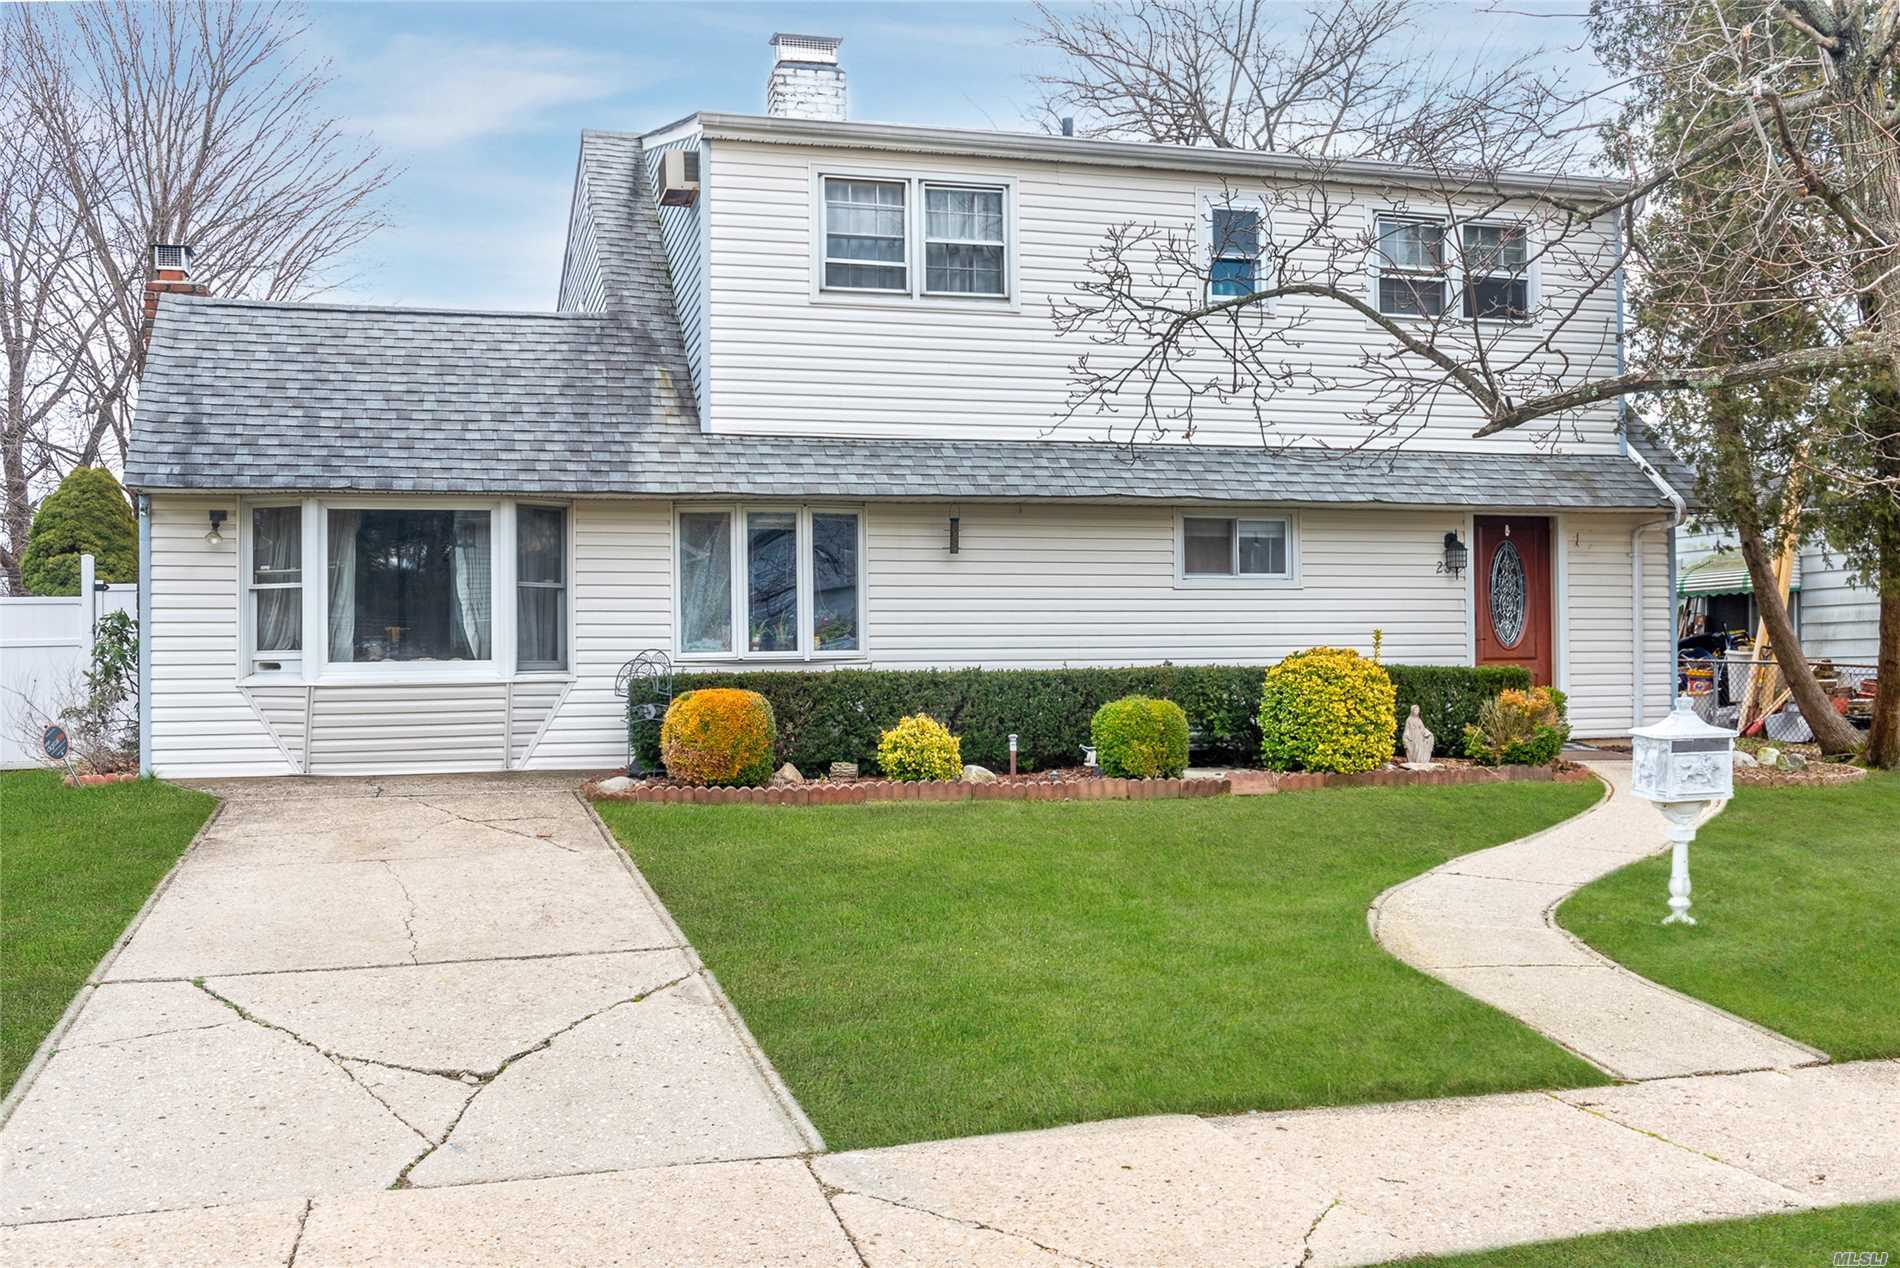 Large 4/5 Bedroom Colonial With 2 Fireplaces, Sliders Off Dr & Master Bdrm/Den Onto Lovely Screened In Porch. Updated Baths, Kitchen And Appliances. Huge Walk In Closet.